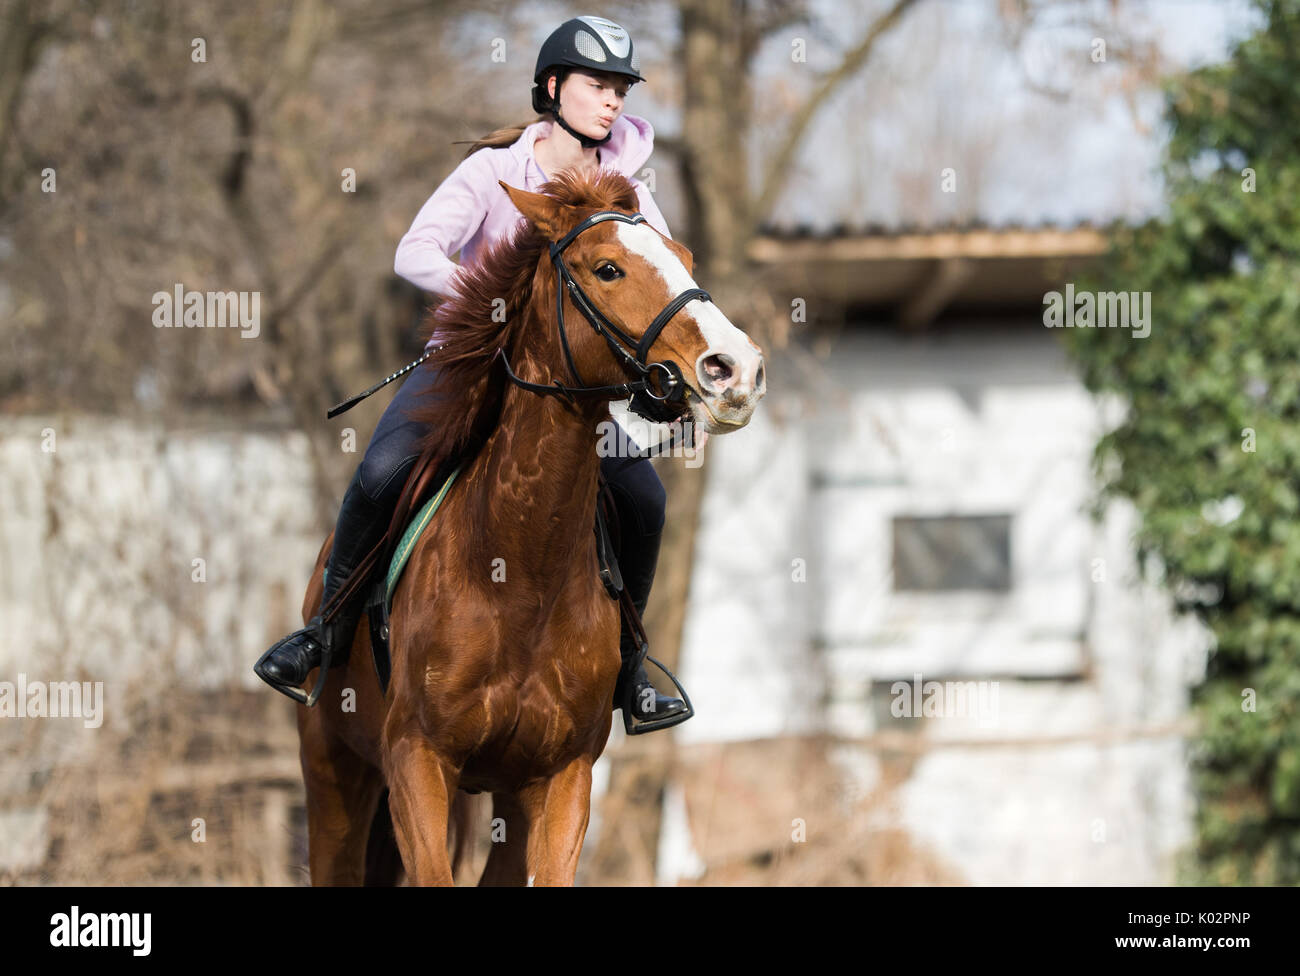 Young pretty girl riding a horse - Stock Image